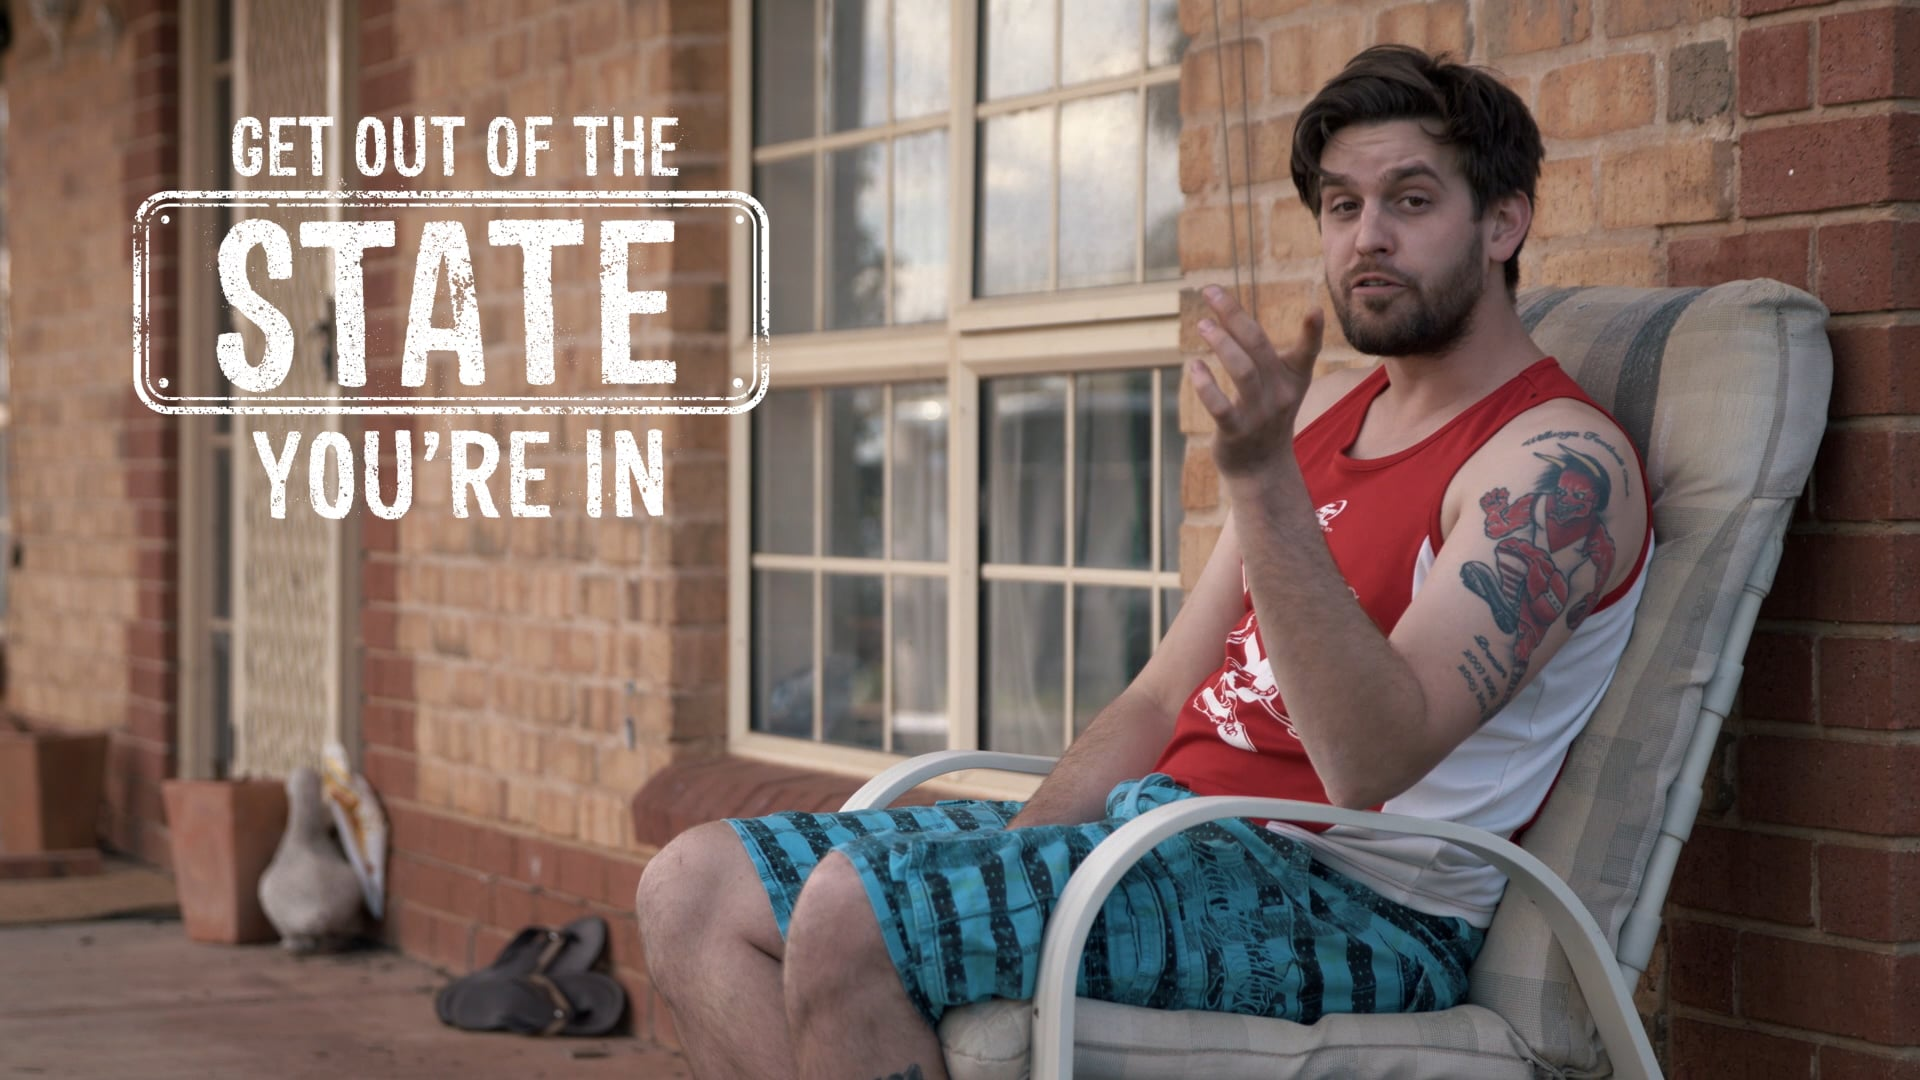 NT TOURISM // Get Out Of The State You're In (SA)